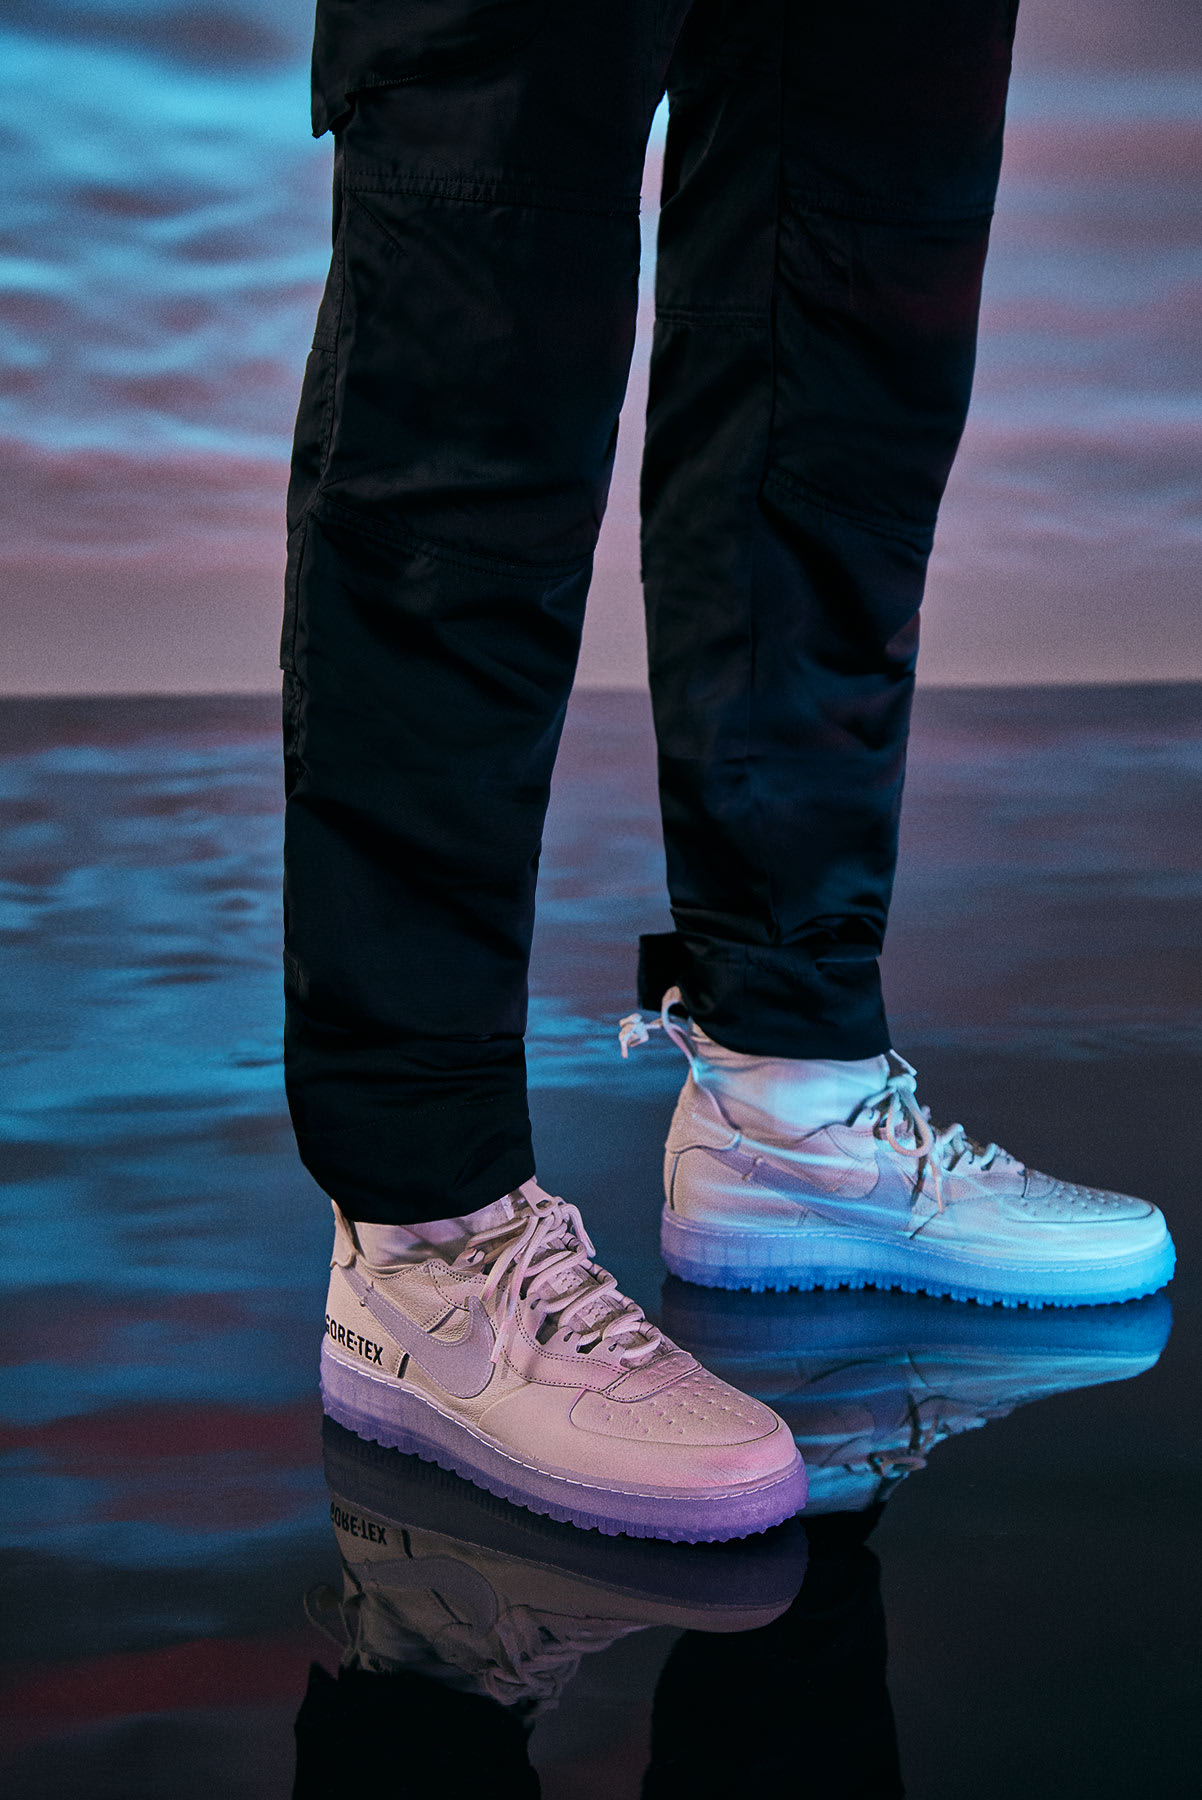 J Rick modelling the Nike Air Force 1 WTR GTX sneaker in Alyx